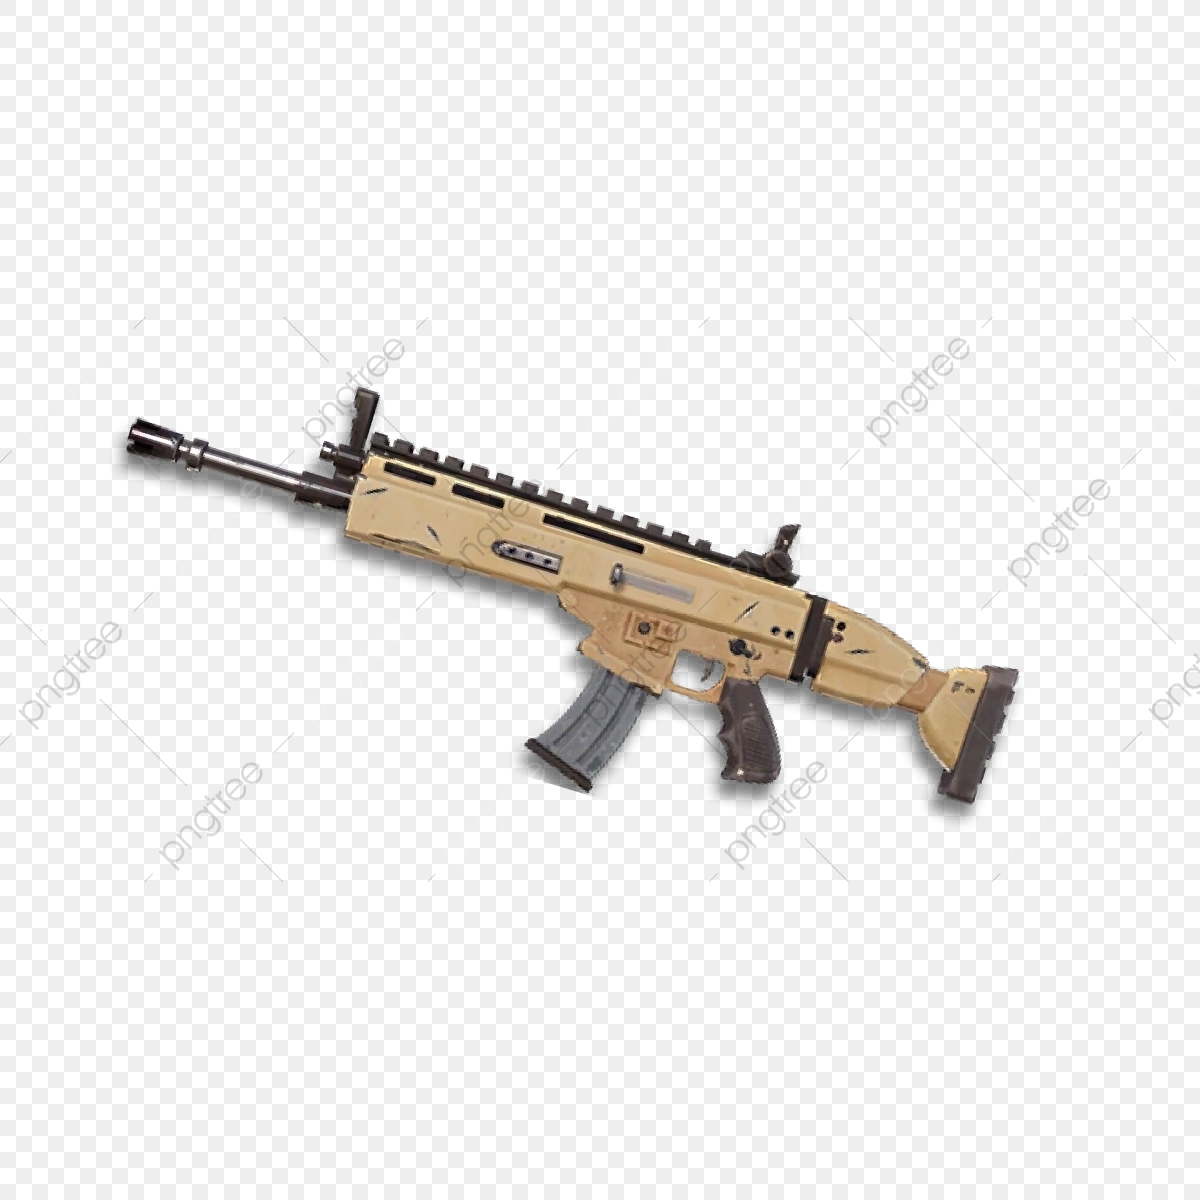 Scar, Fortnite, Pc Game PNG and Vector with Transparent Background.